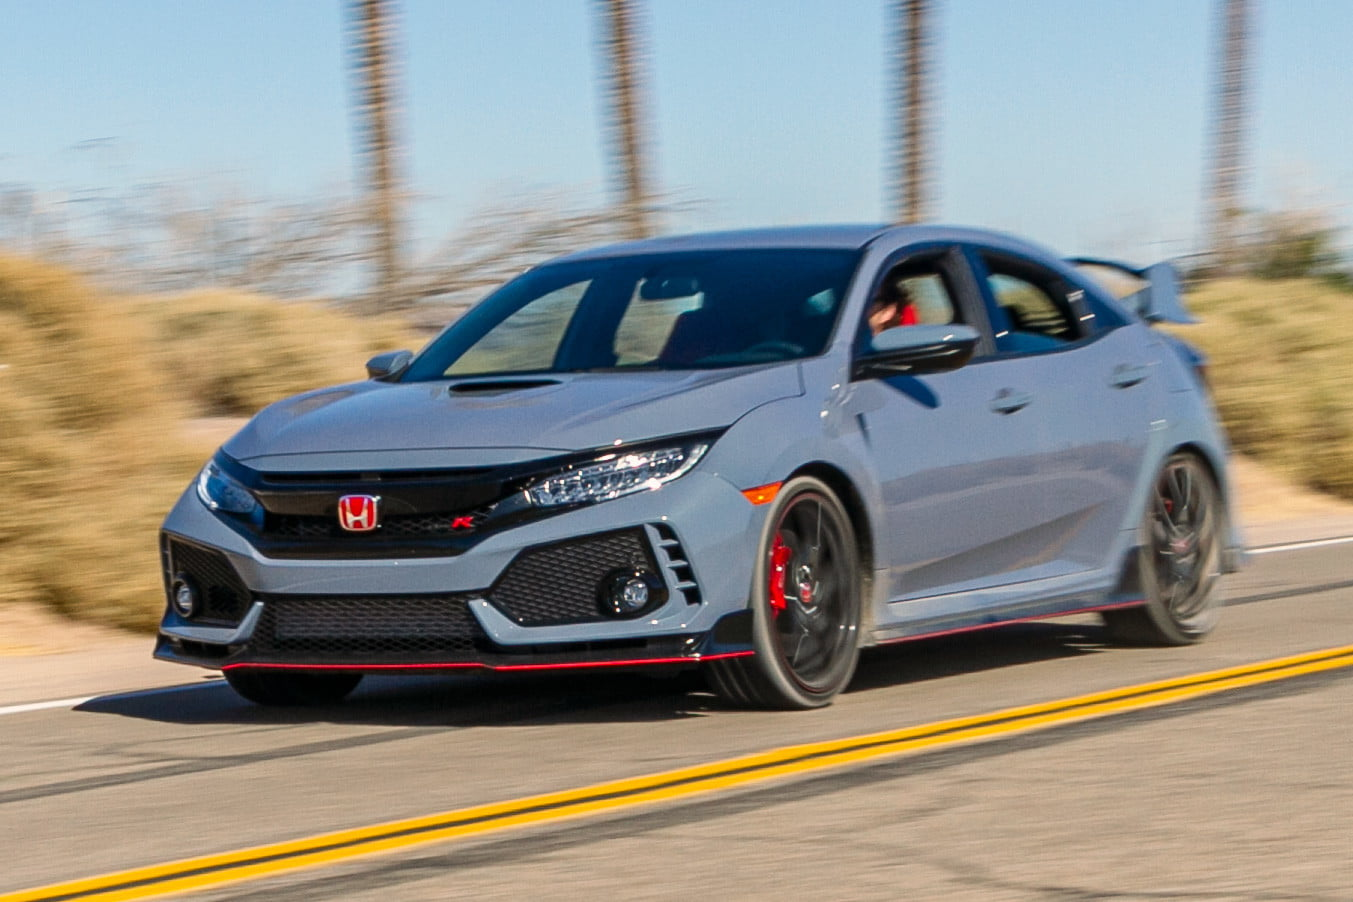 I Drove A Civic Type R To Sema And Saw The Future Of Car Culture Digital Trends